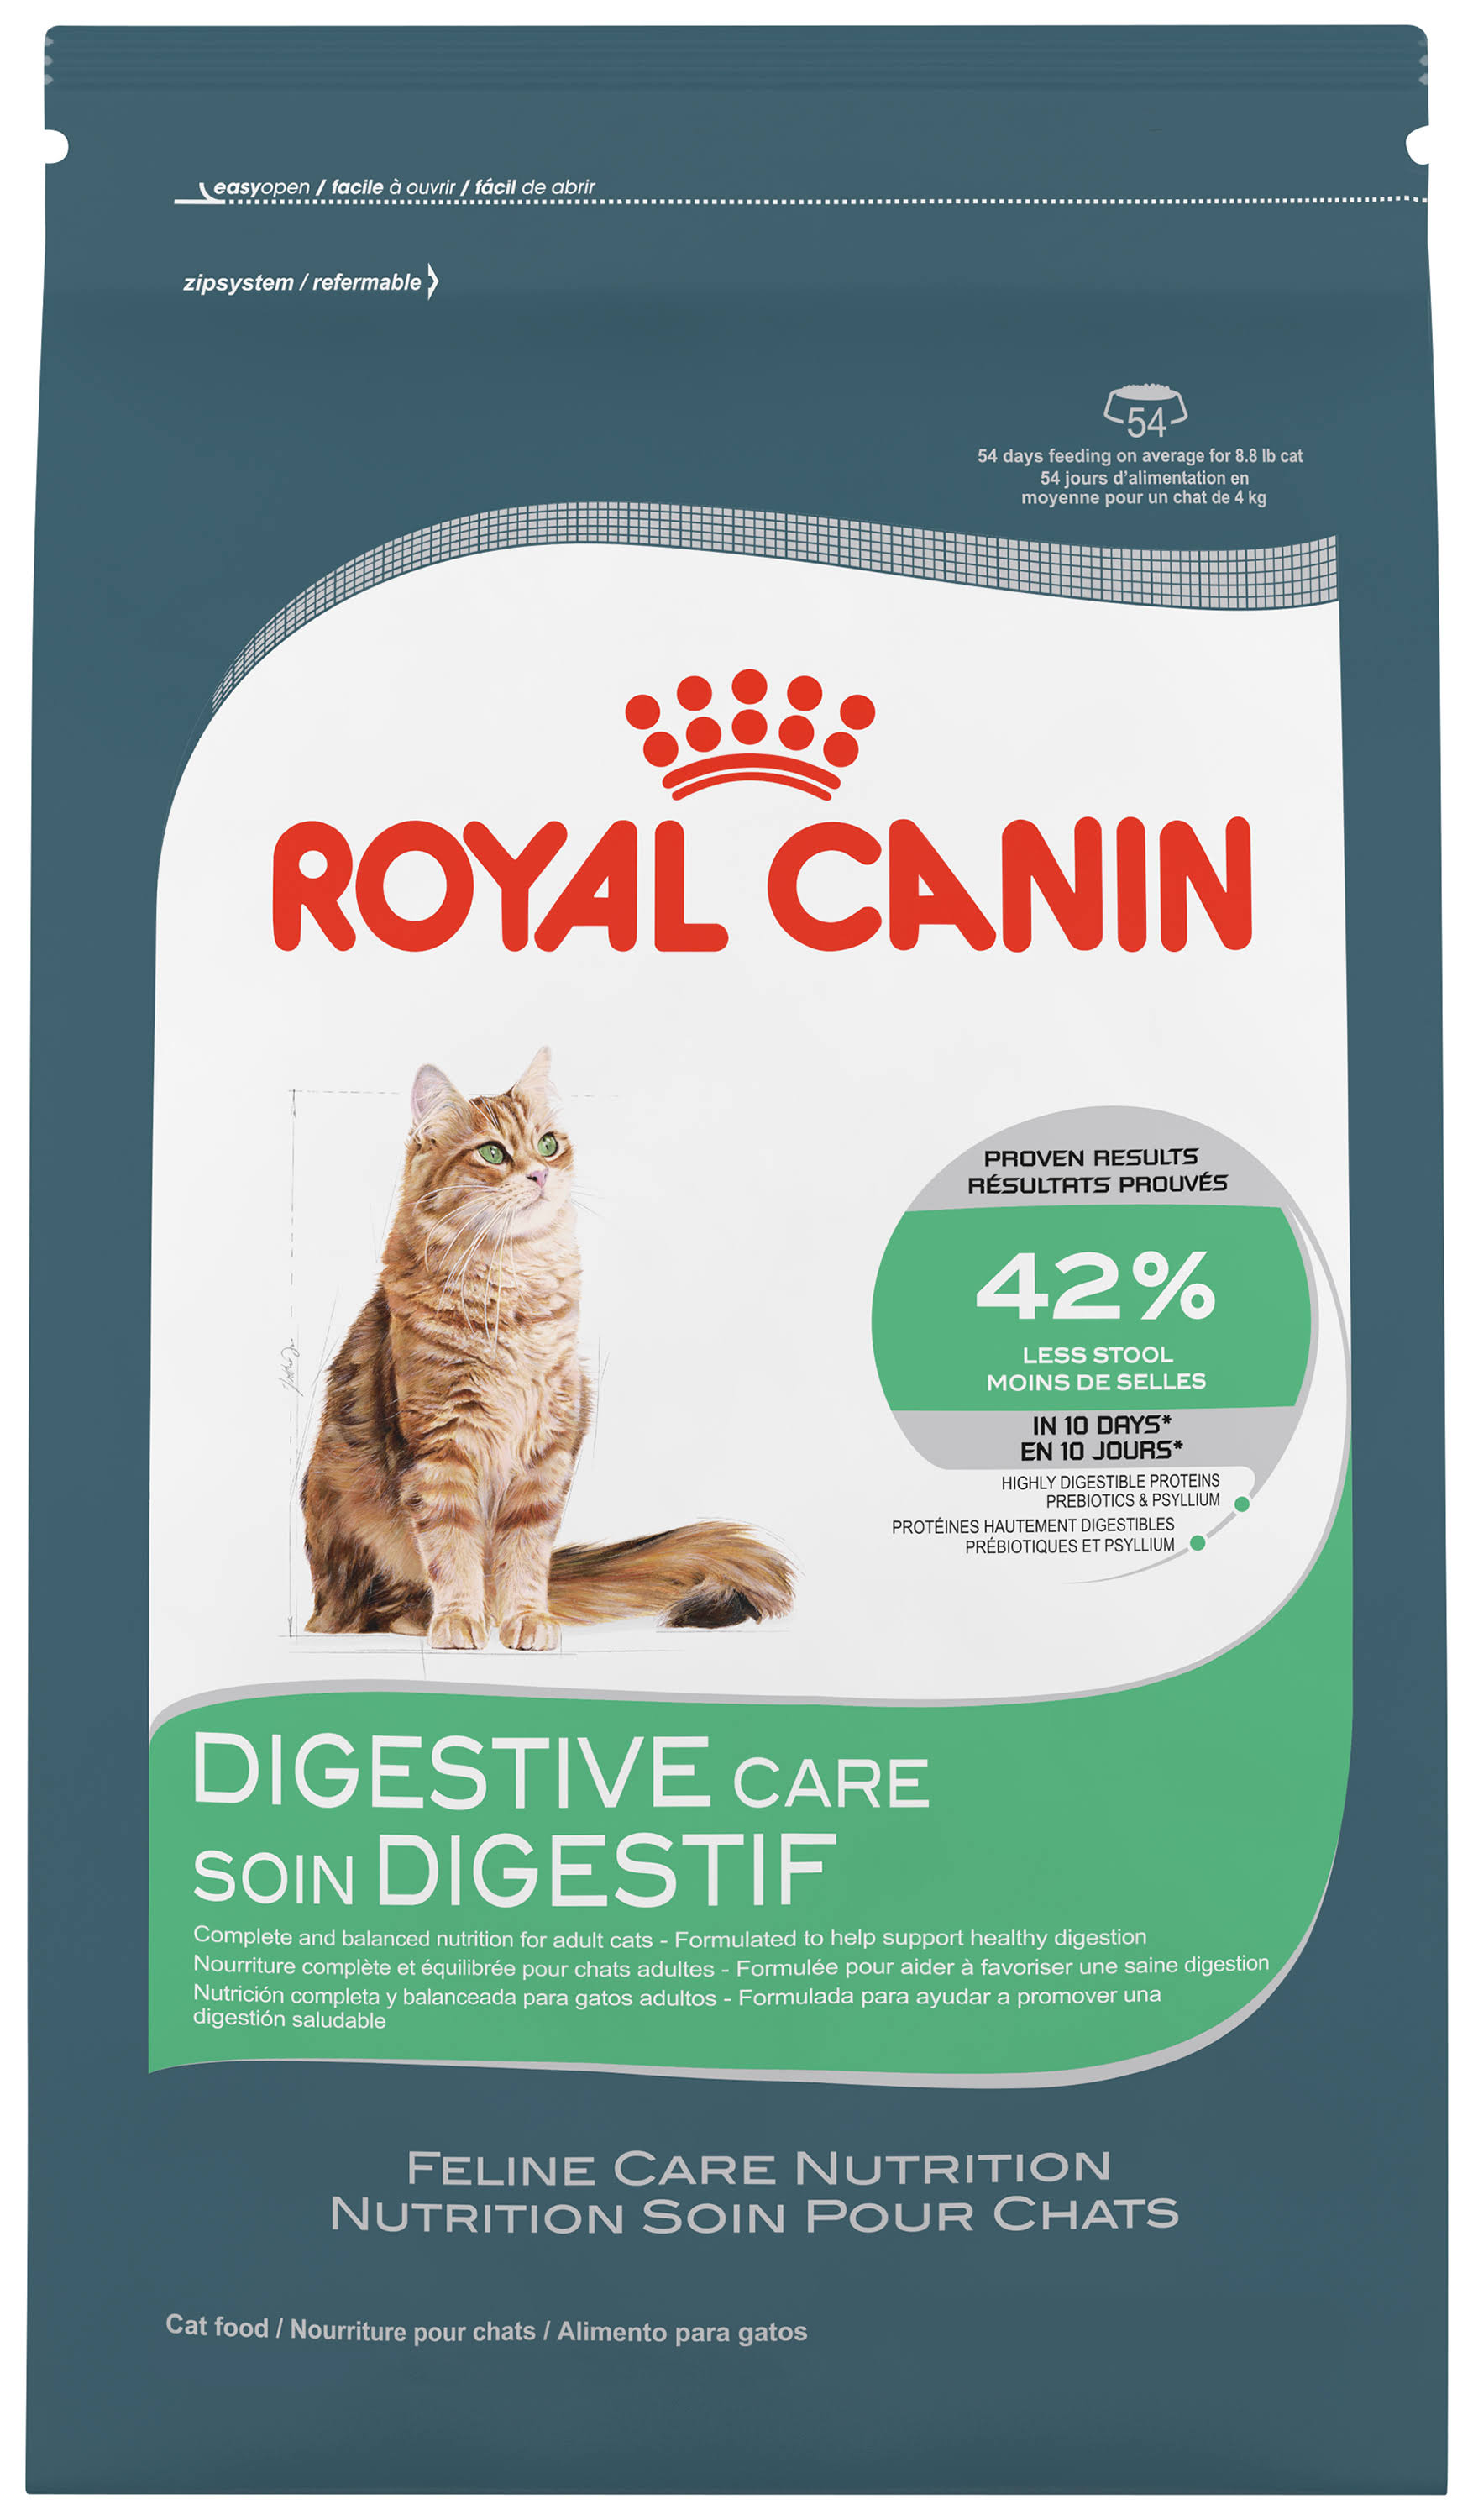 Royal Canin Feline Care Nutrition Digestive Care Adult Cat Food 14 Lb. Bag